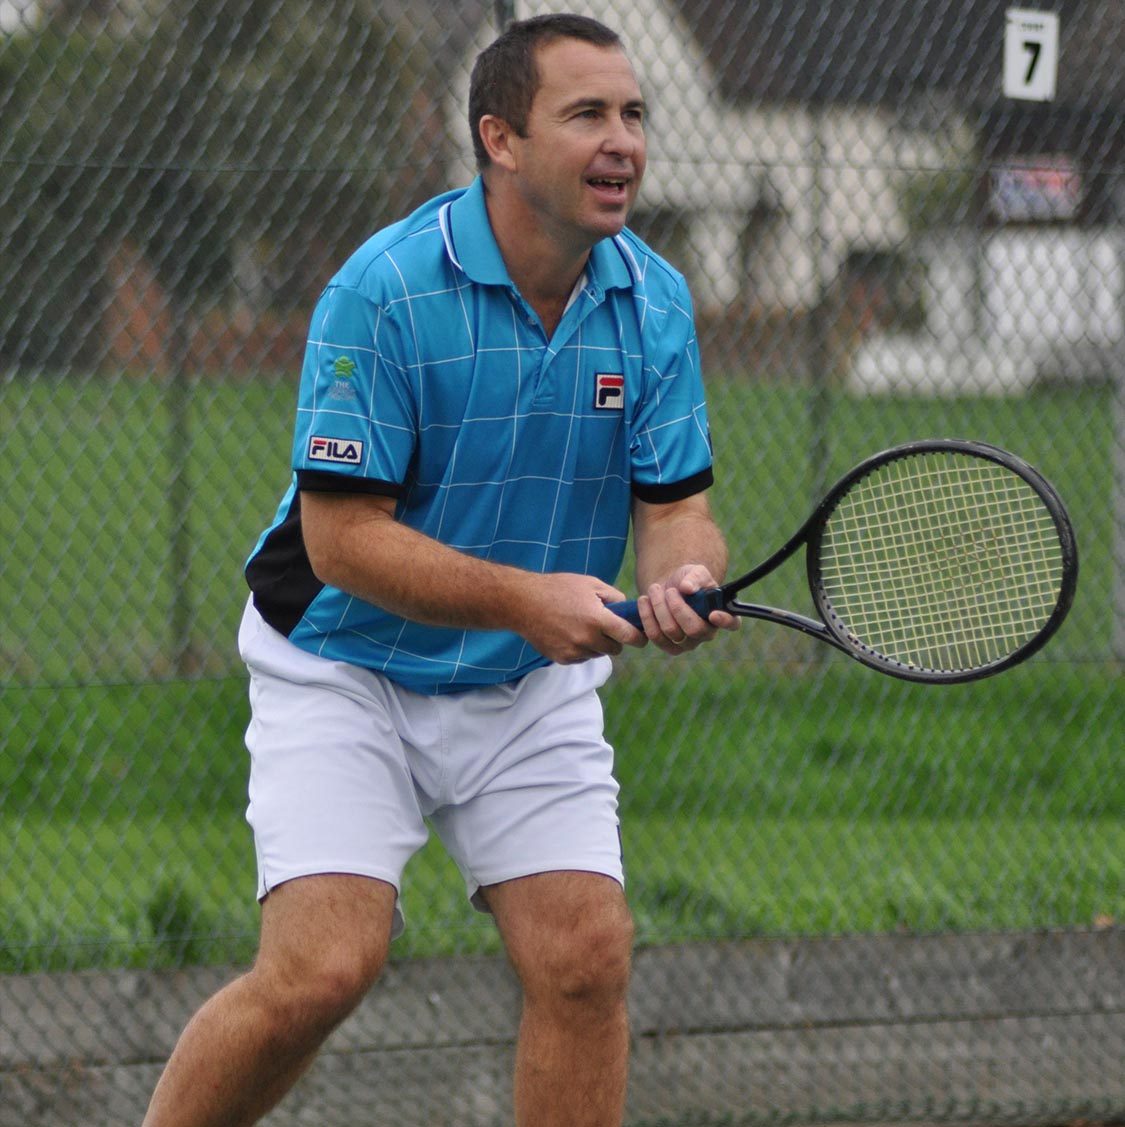 Danny Sapsford - Danny reached 170 and 83 in doubles,representing Great Britain in the Davis Cup from 1990-95. Danny competed in all 4 Grand Slams reaching the 3rd round at Wimbledon before losing to eventual champion, Pete Sampras.In 1998, Danny became the Men's National Singles Champion with wins against Henman and Rusedski.